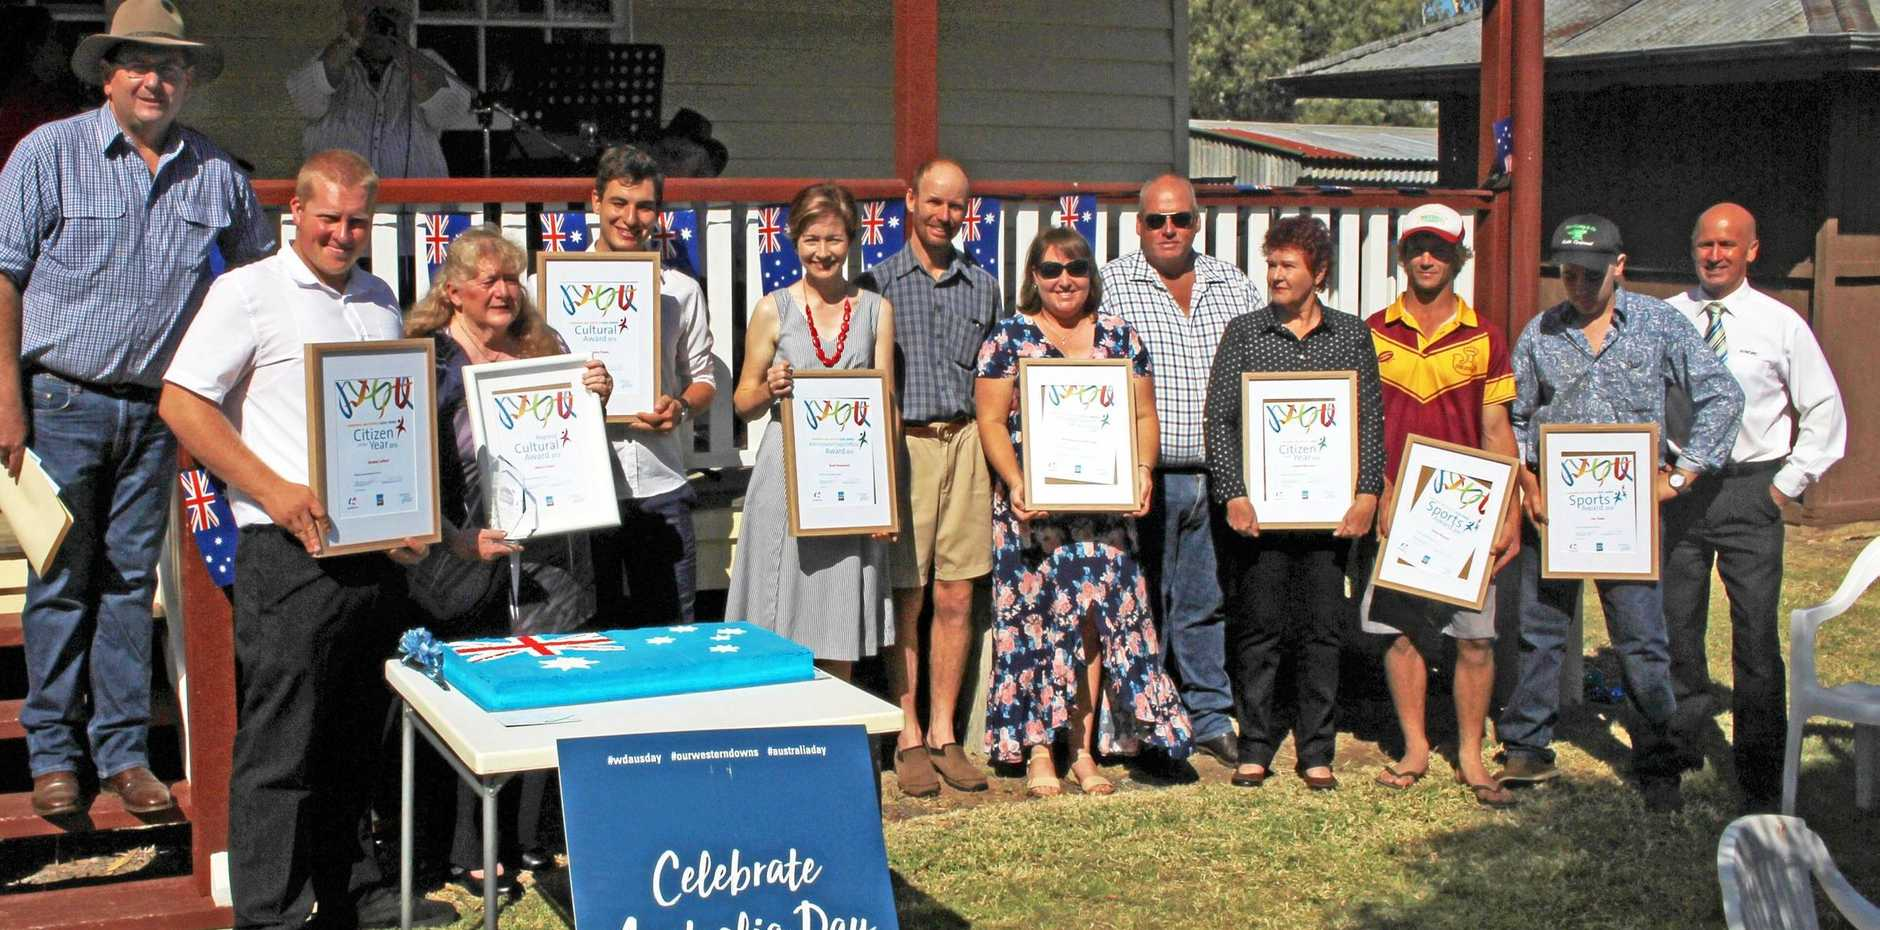 WELCOME: Residents receiving their official awards at Australia Day celebrations at Athlone Cottage in Jandowae this year.